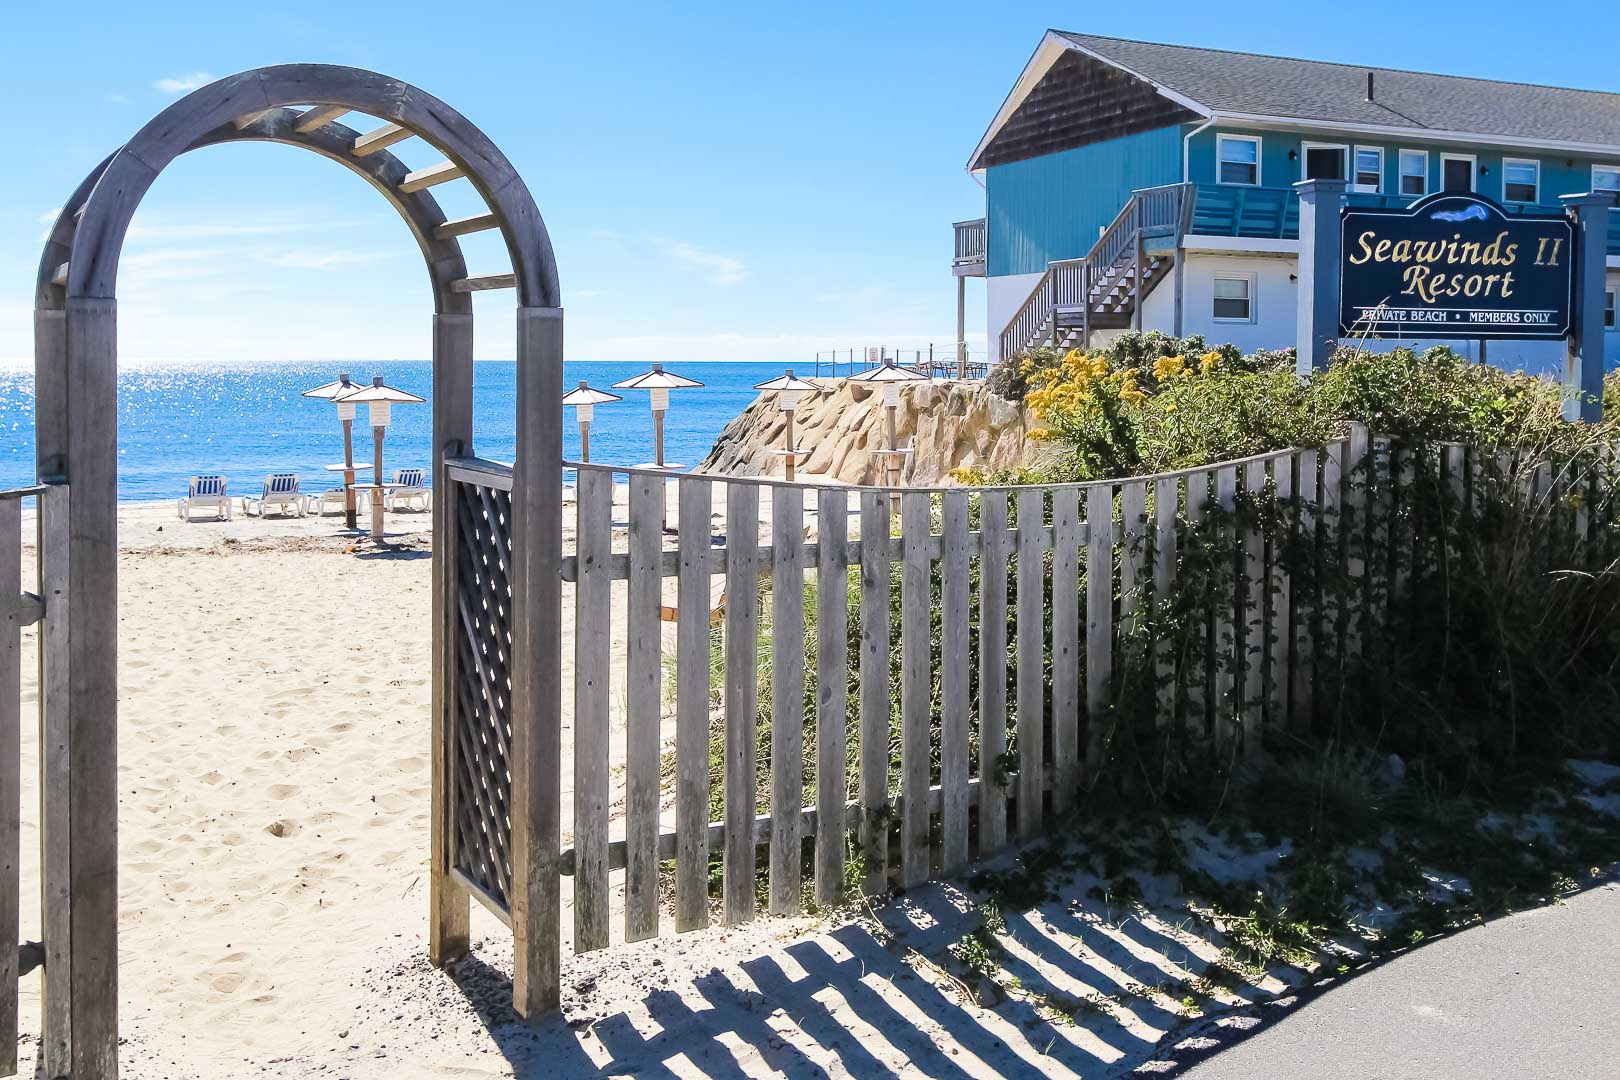 A beautiful entrance to the beach at VRI's Seawinds II Resort in Massachusetts.